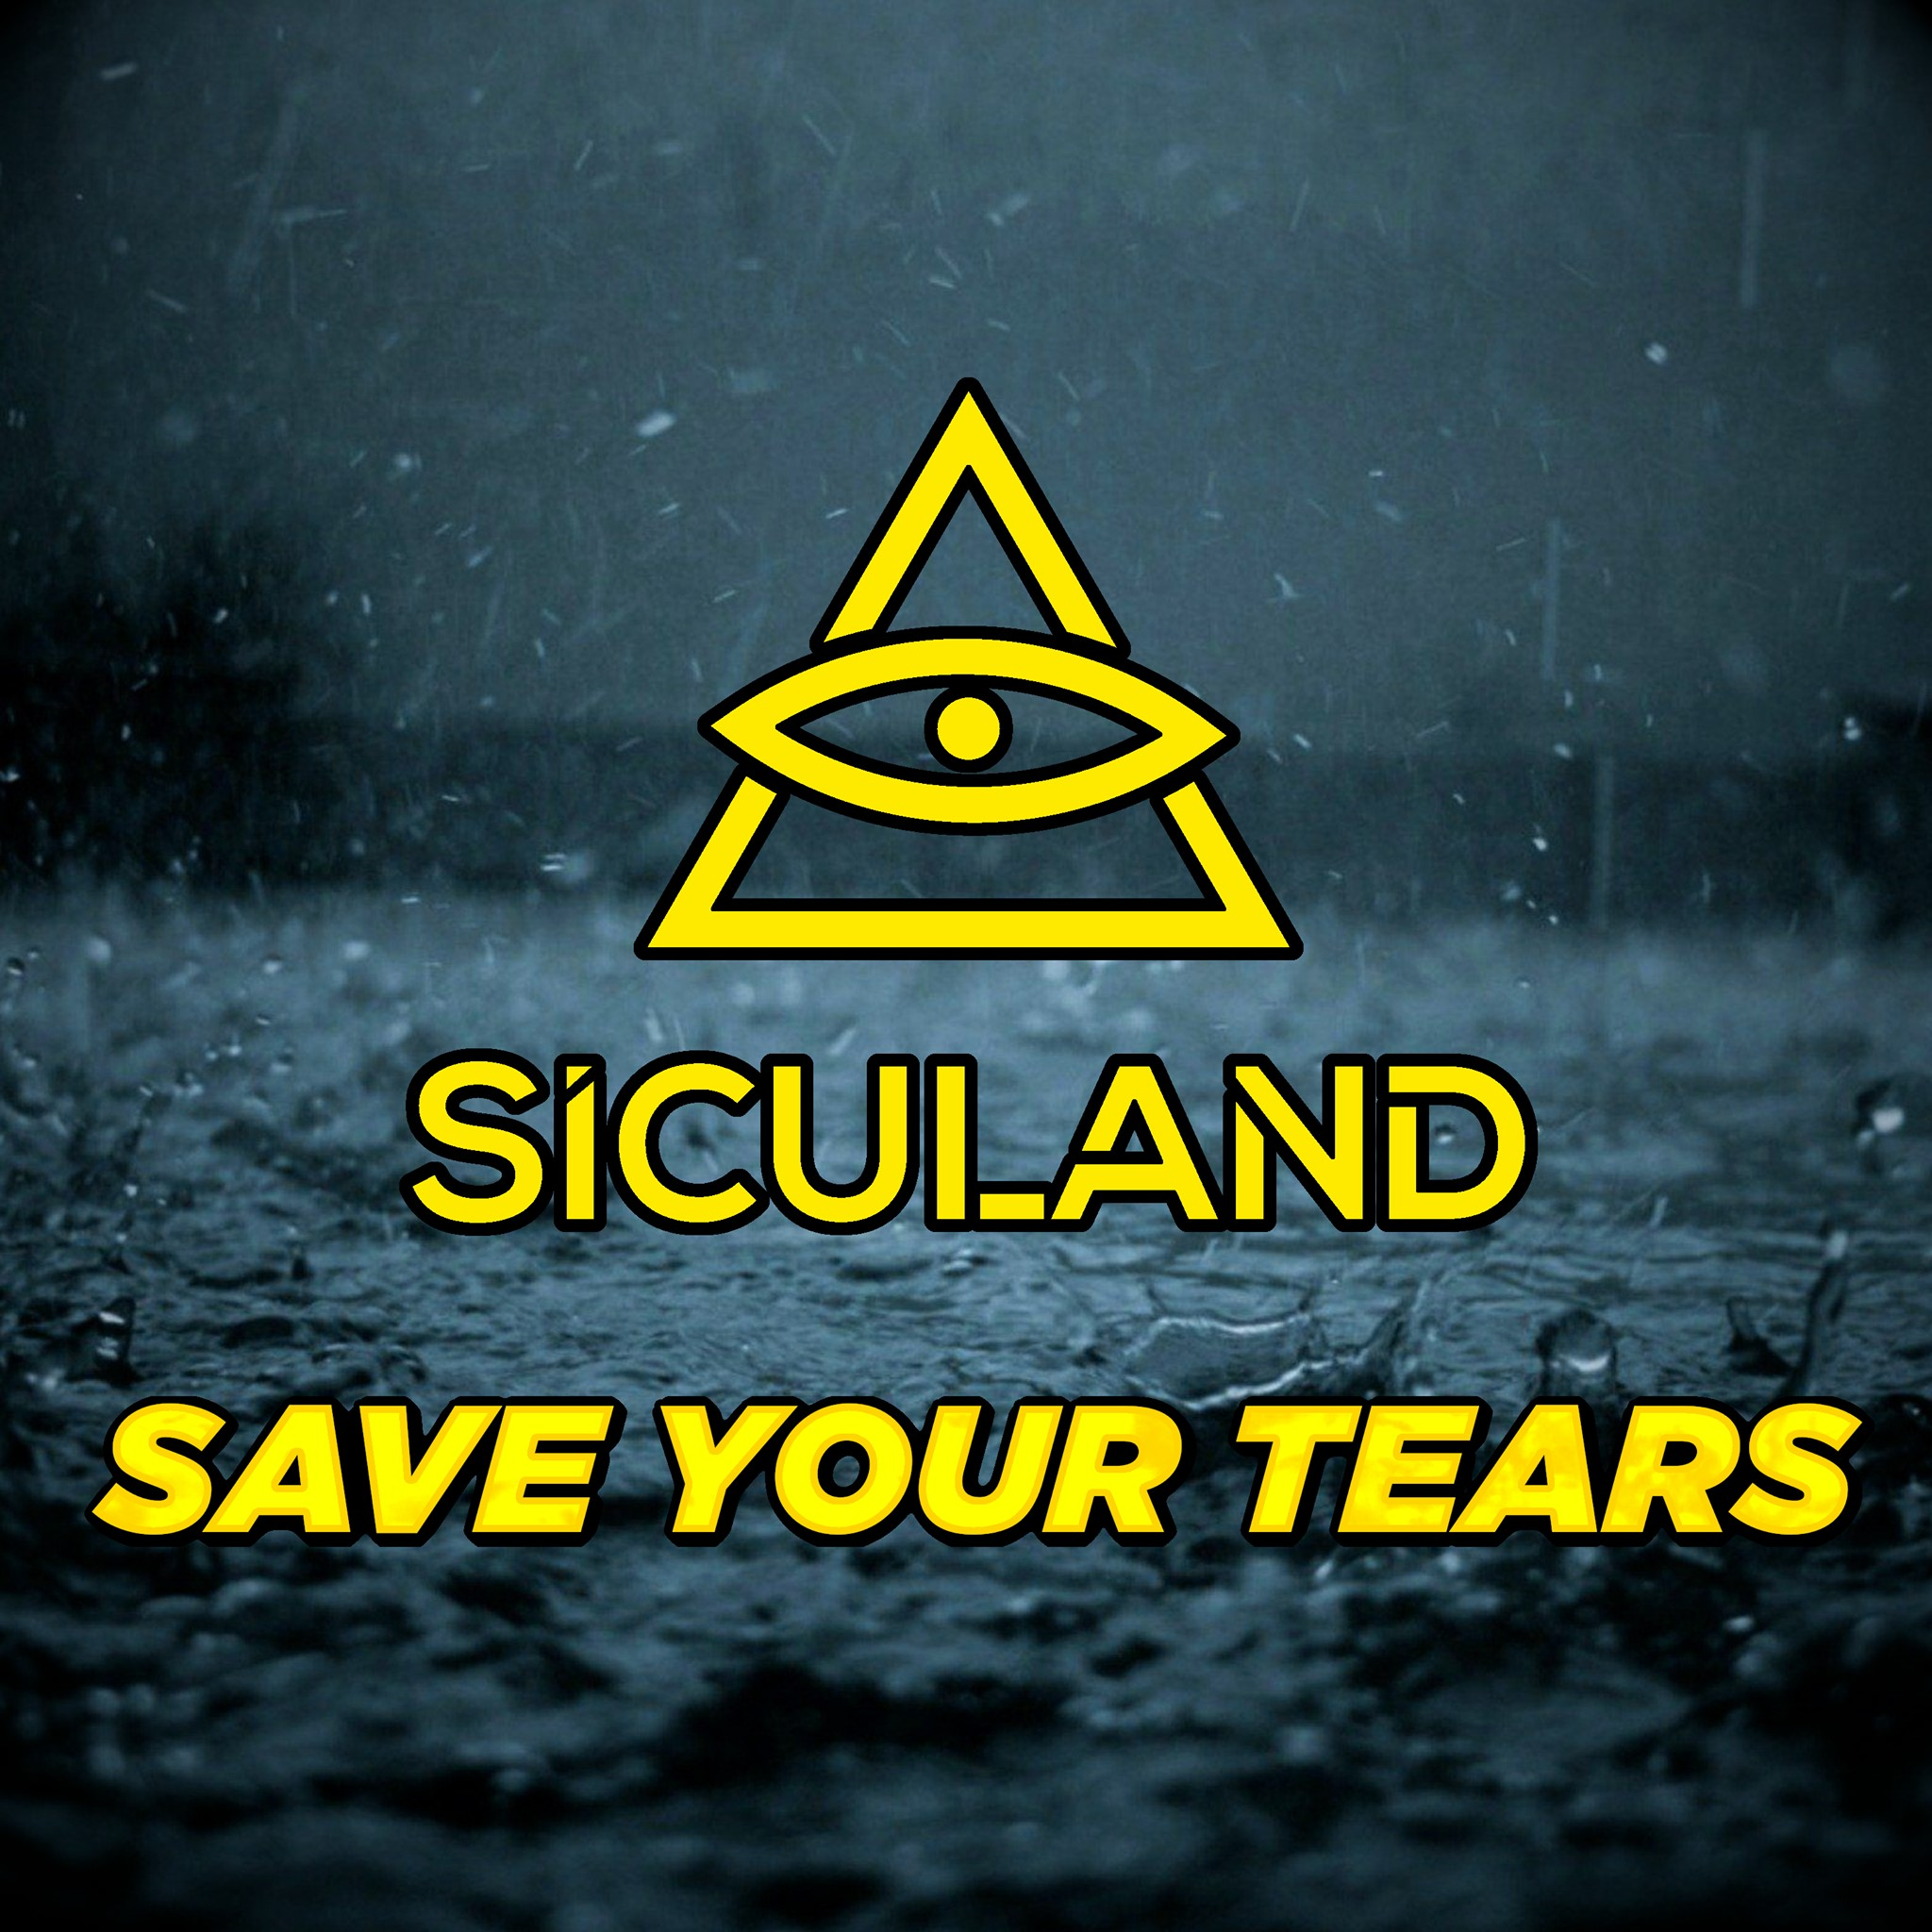 Siculand - Save Your Tears